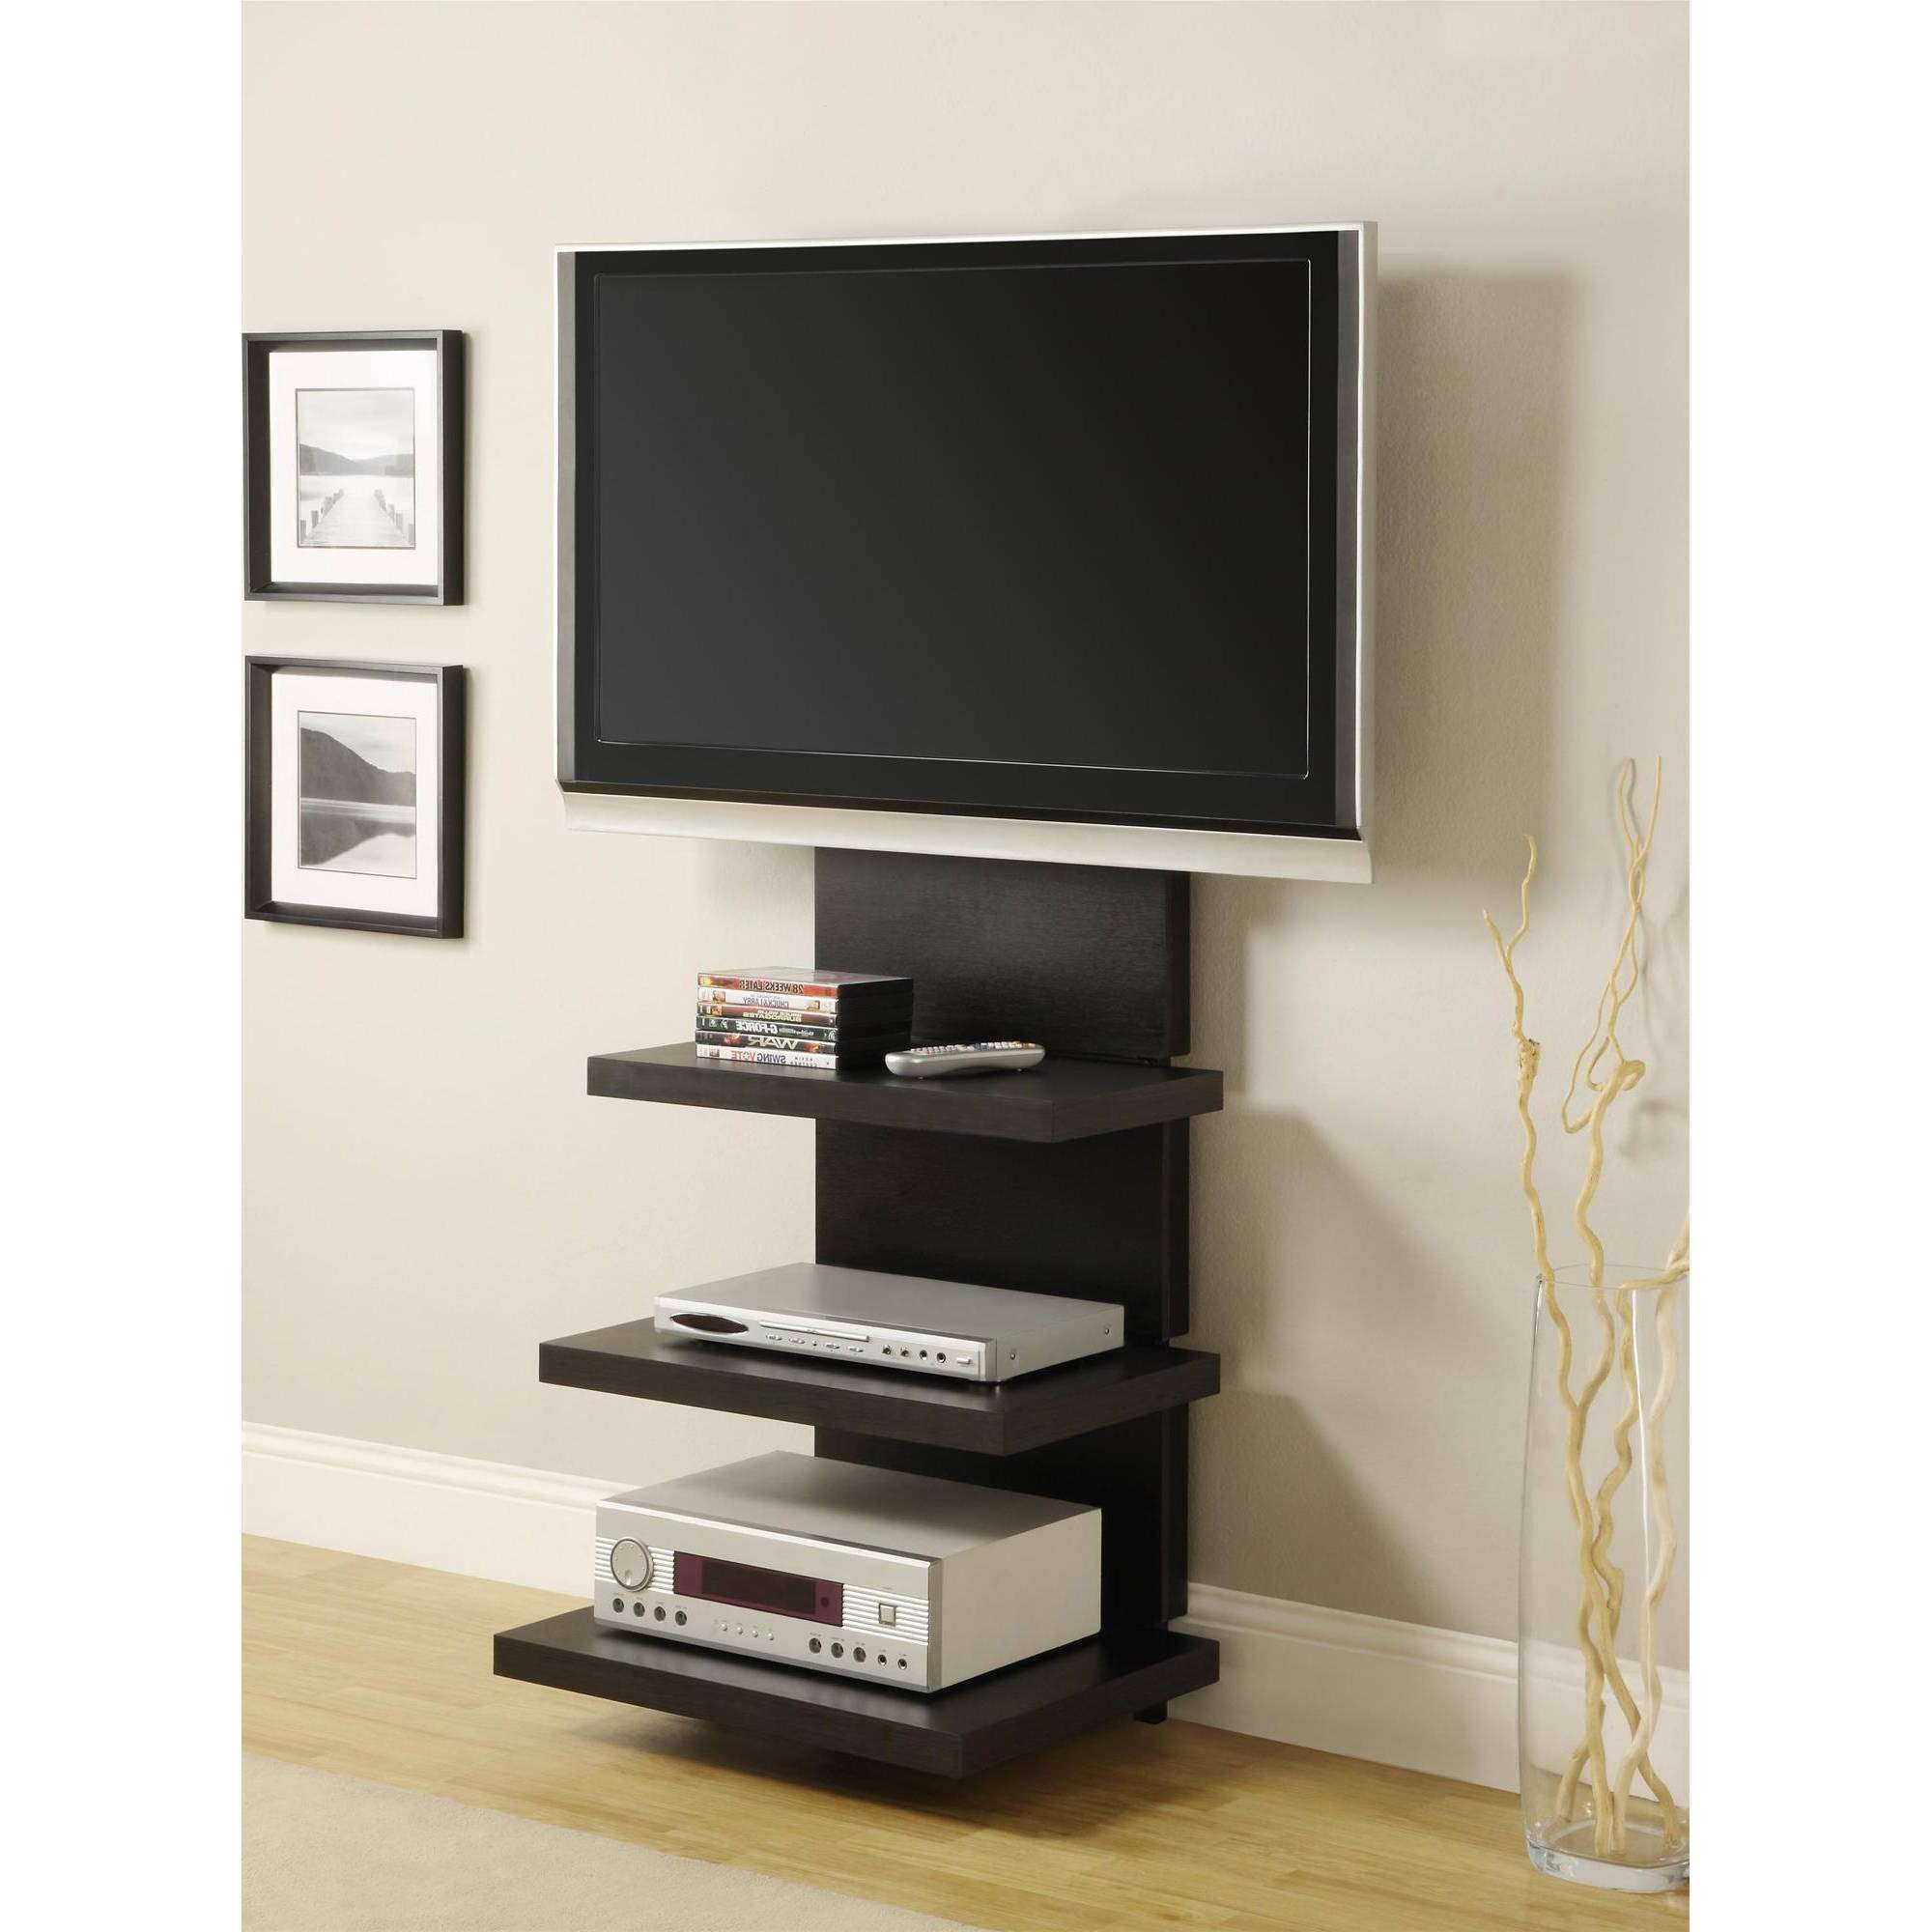 Epic Tall Tv Stand With Drawers 24 On Interior Designing Home Throughout 24 Inch Tall Tv Stands (View 2 of 15)